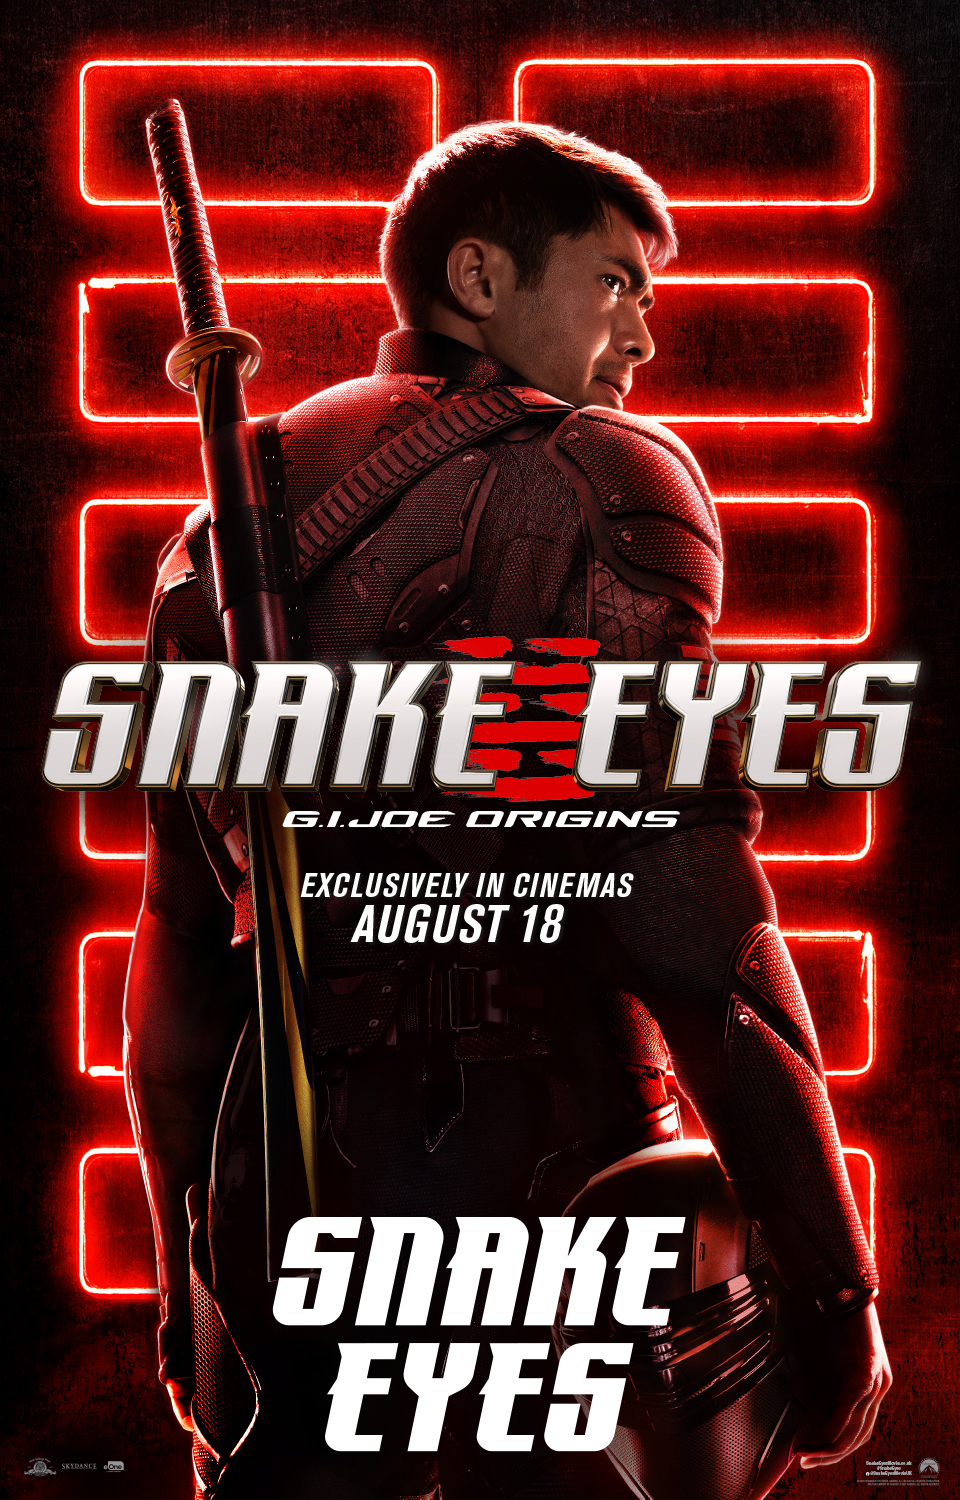 Snake Eyes: G.I. Joe Origins: If only this was as good as the Nic Cage flick